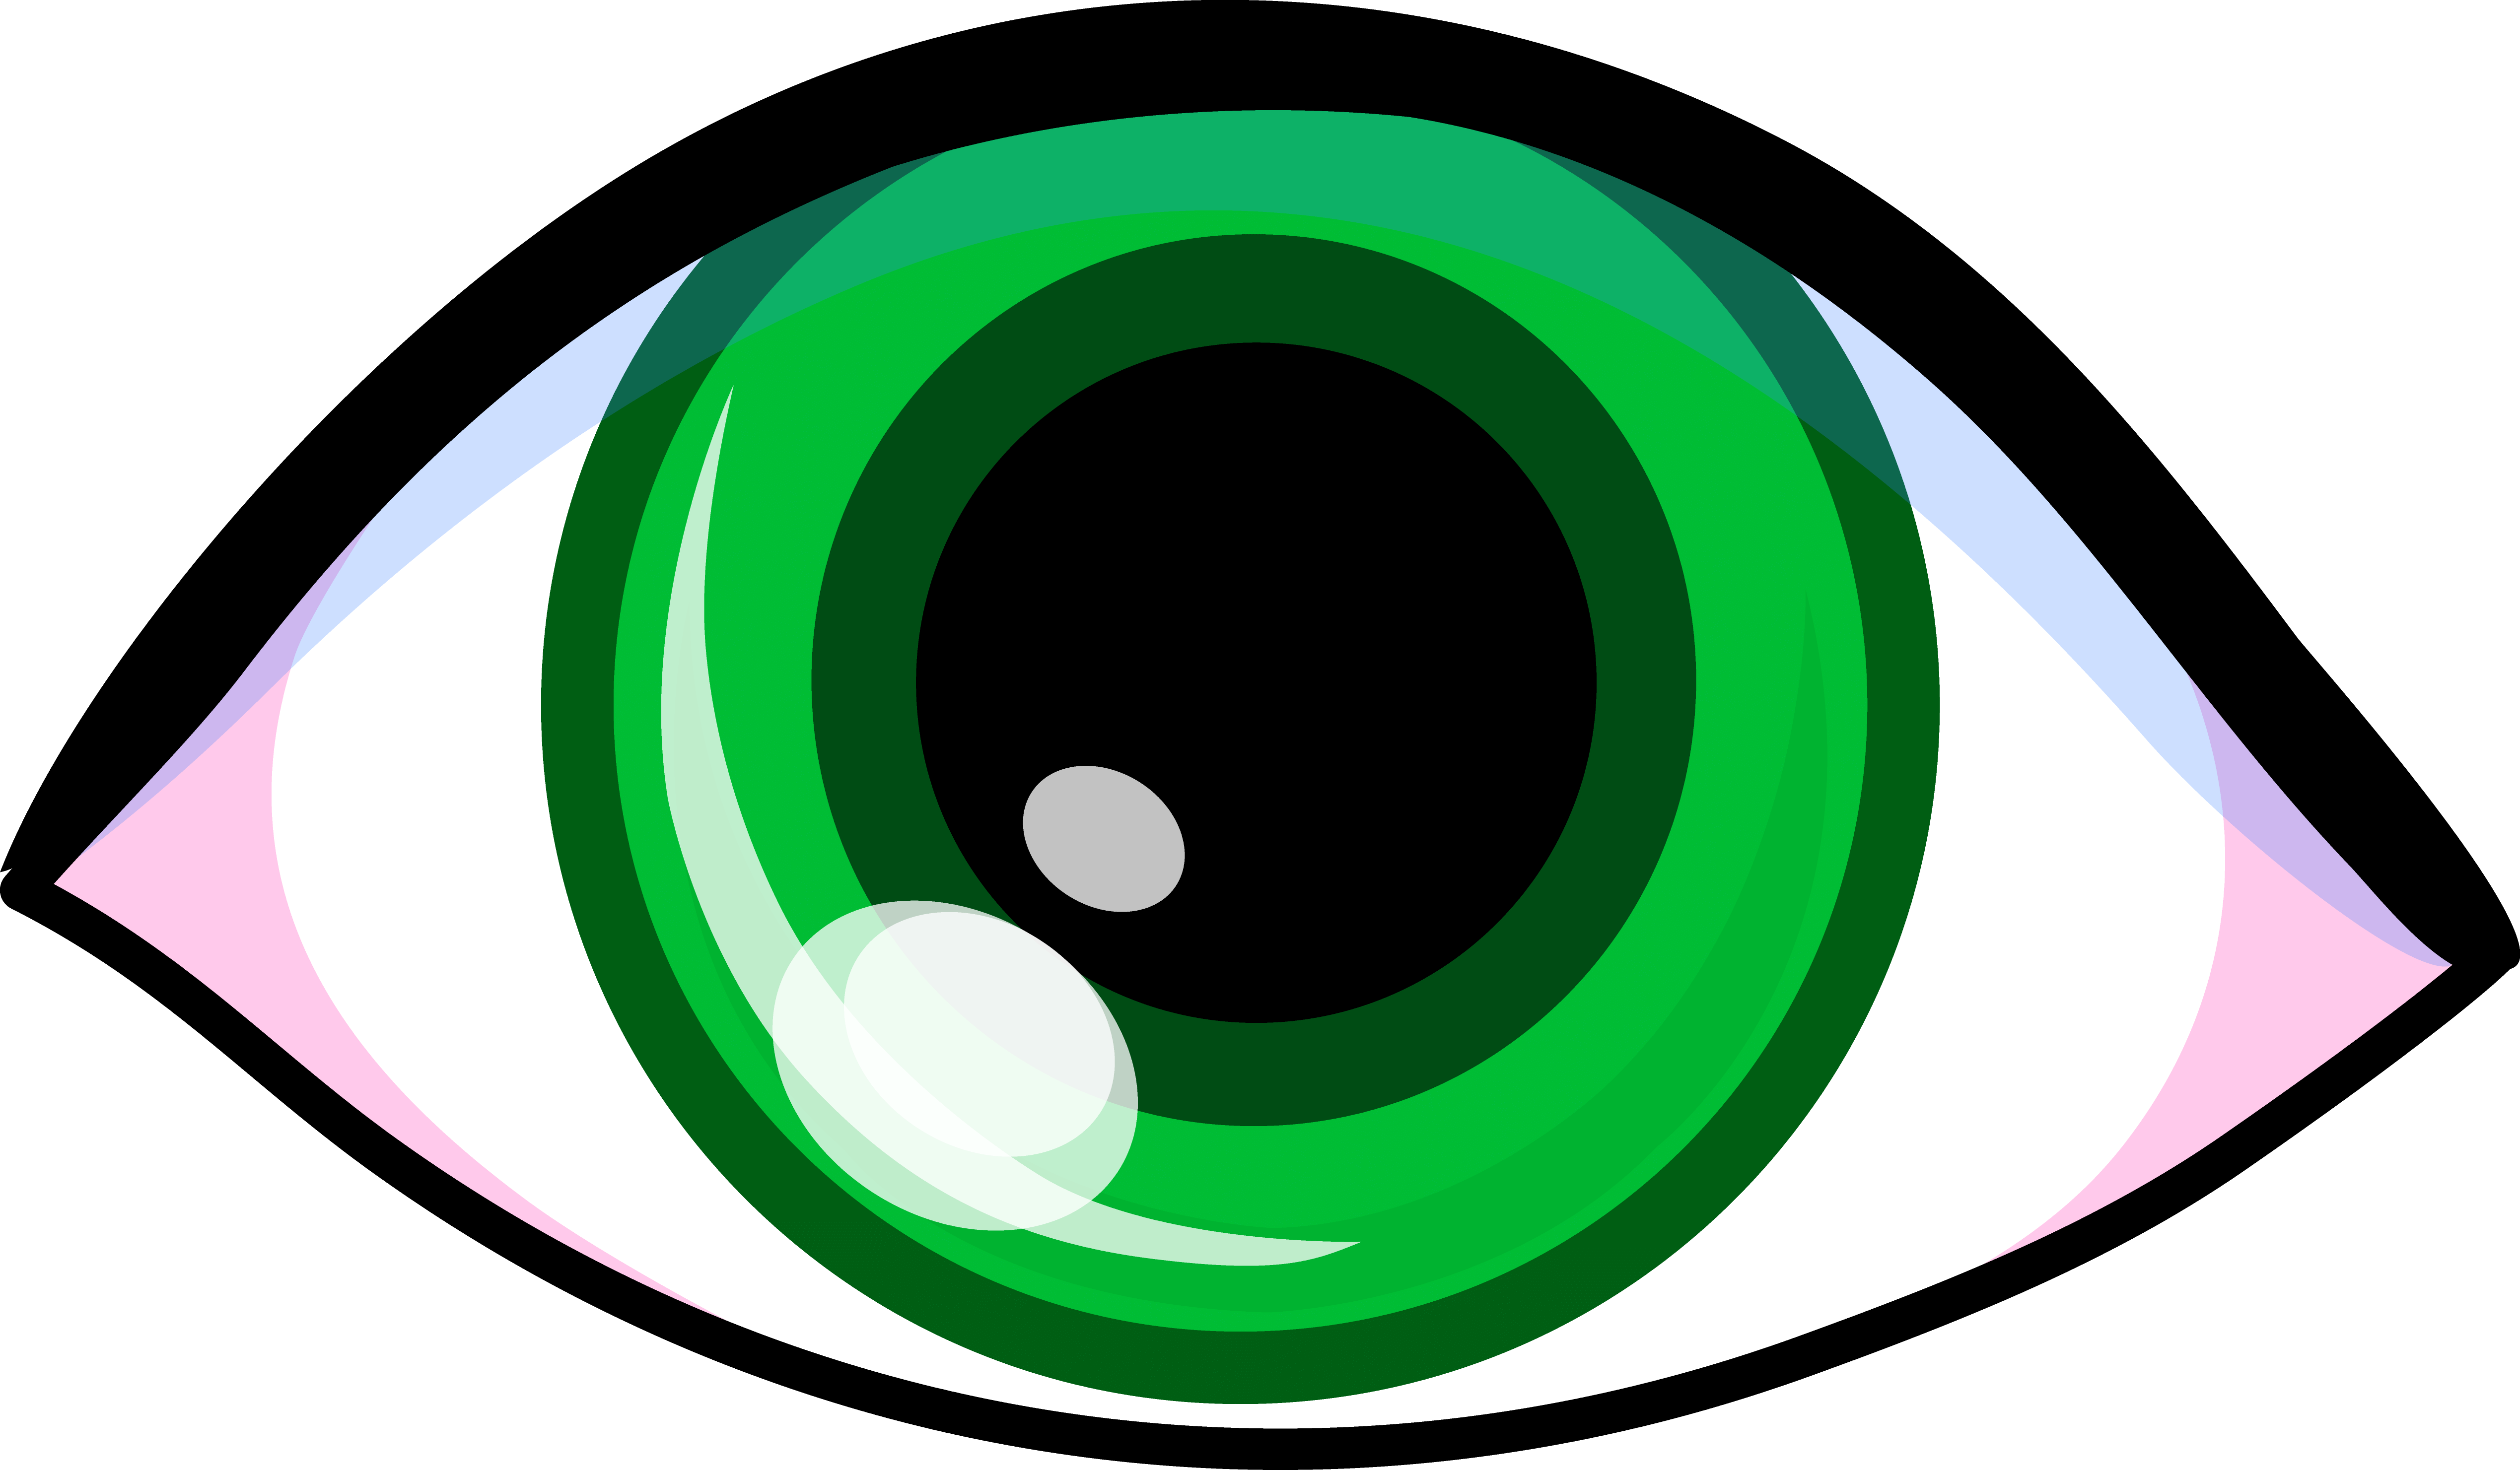 Free Green Eyes Cliparts, Download Free Clip Art, Free Clip Art on.